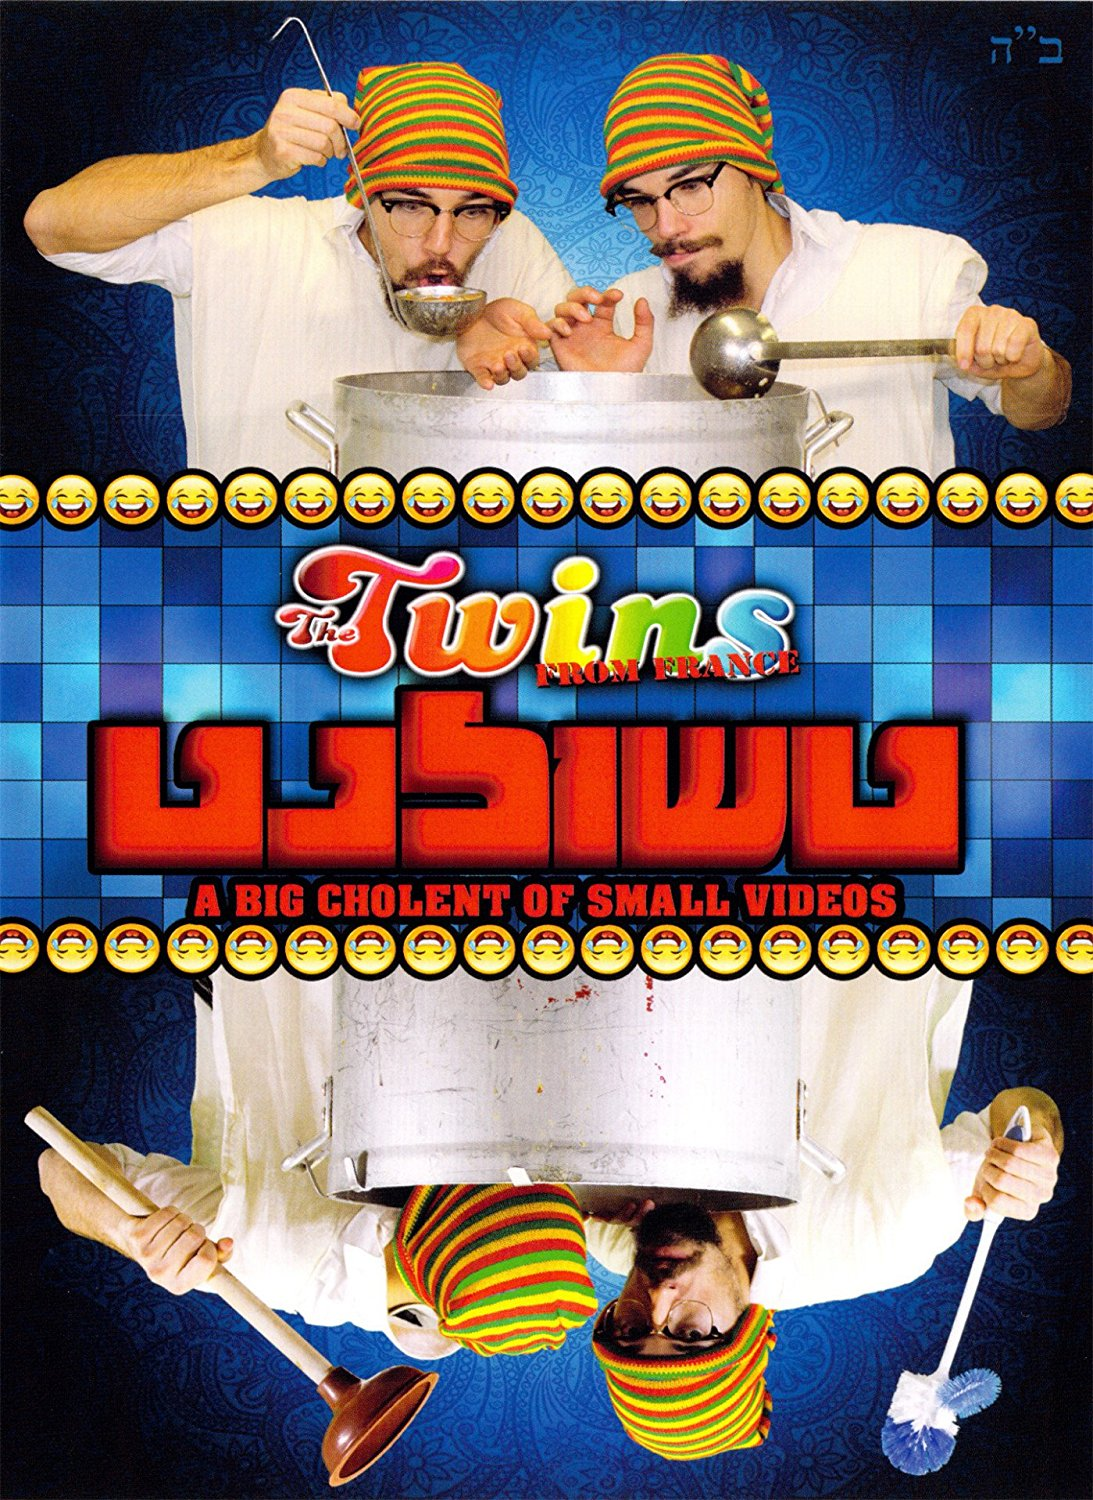 The Twins from France - Cholent - DVD